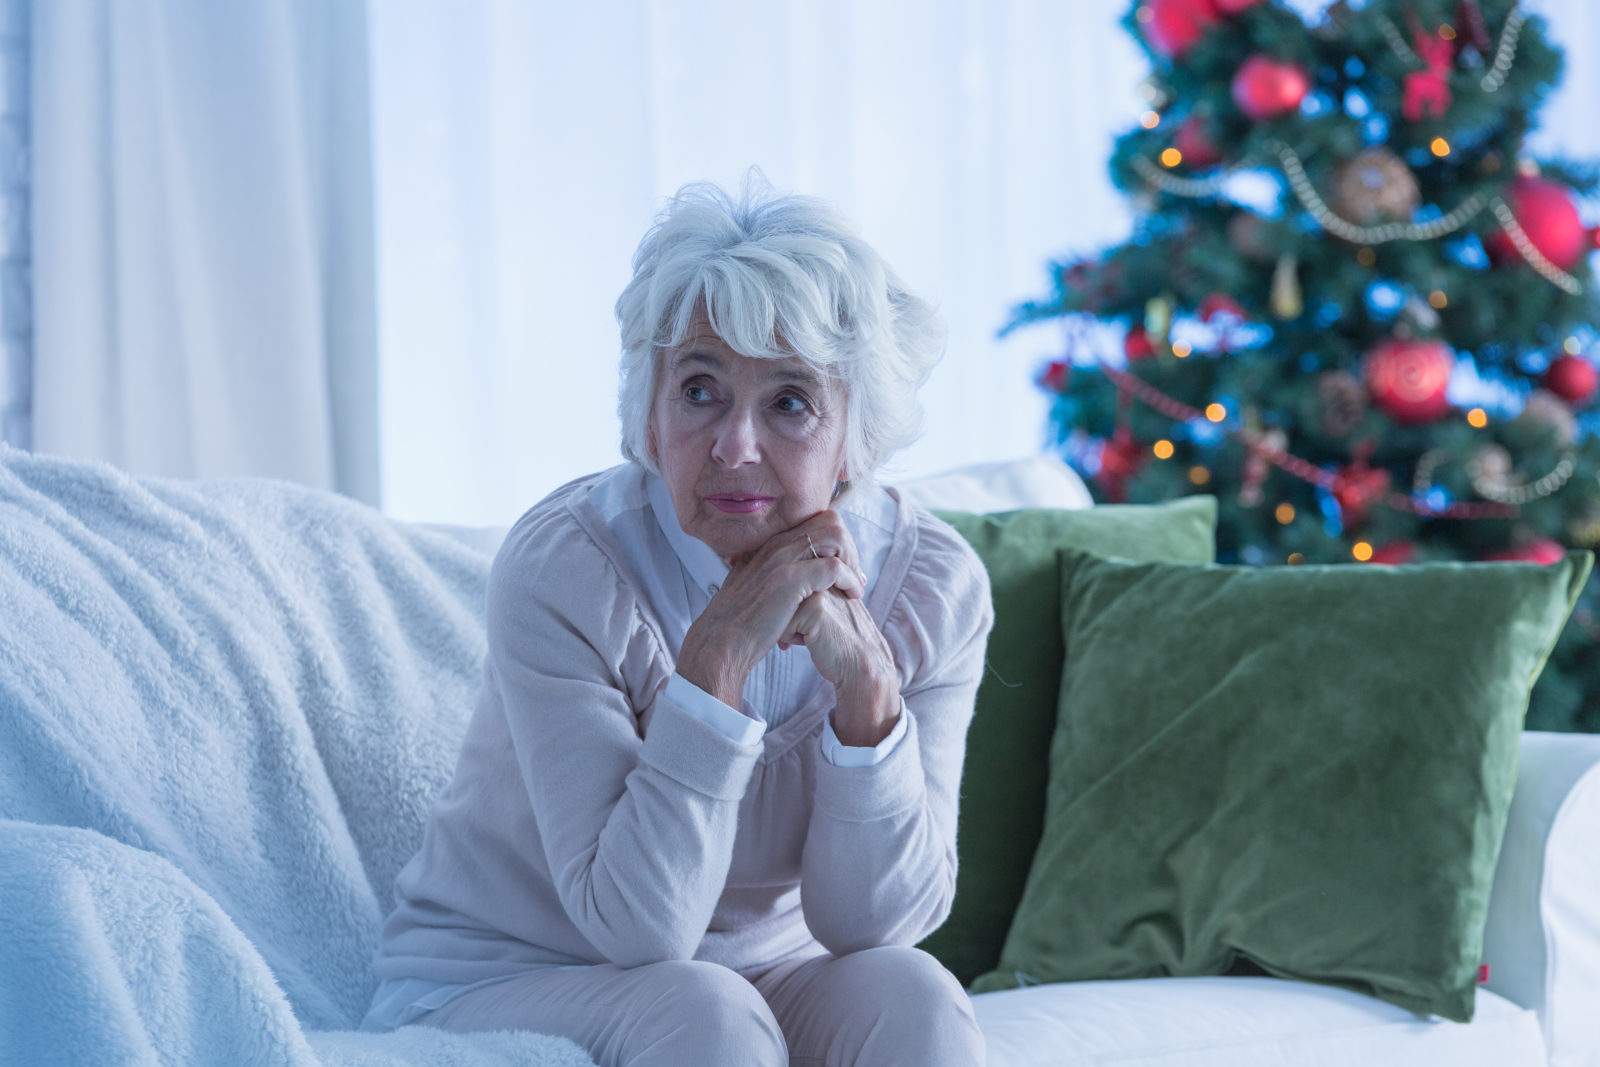 Woman under stress during holidays